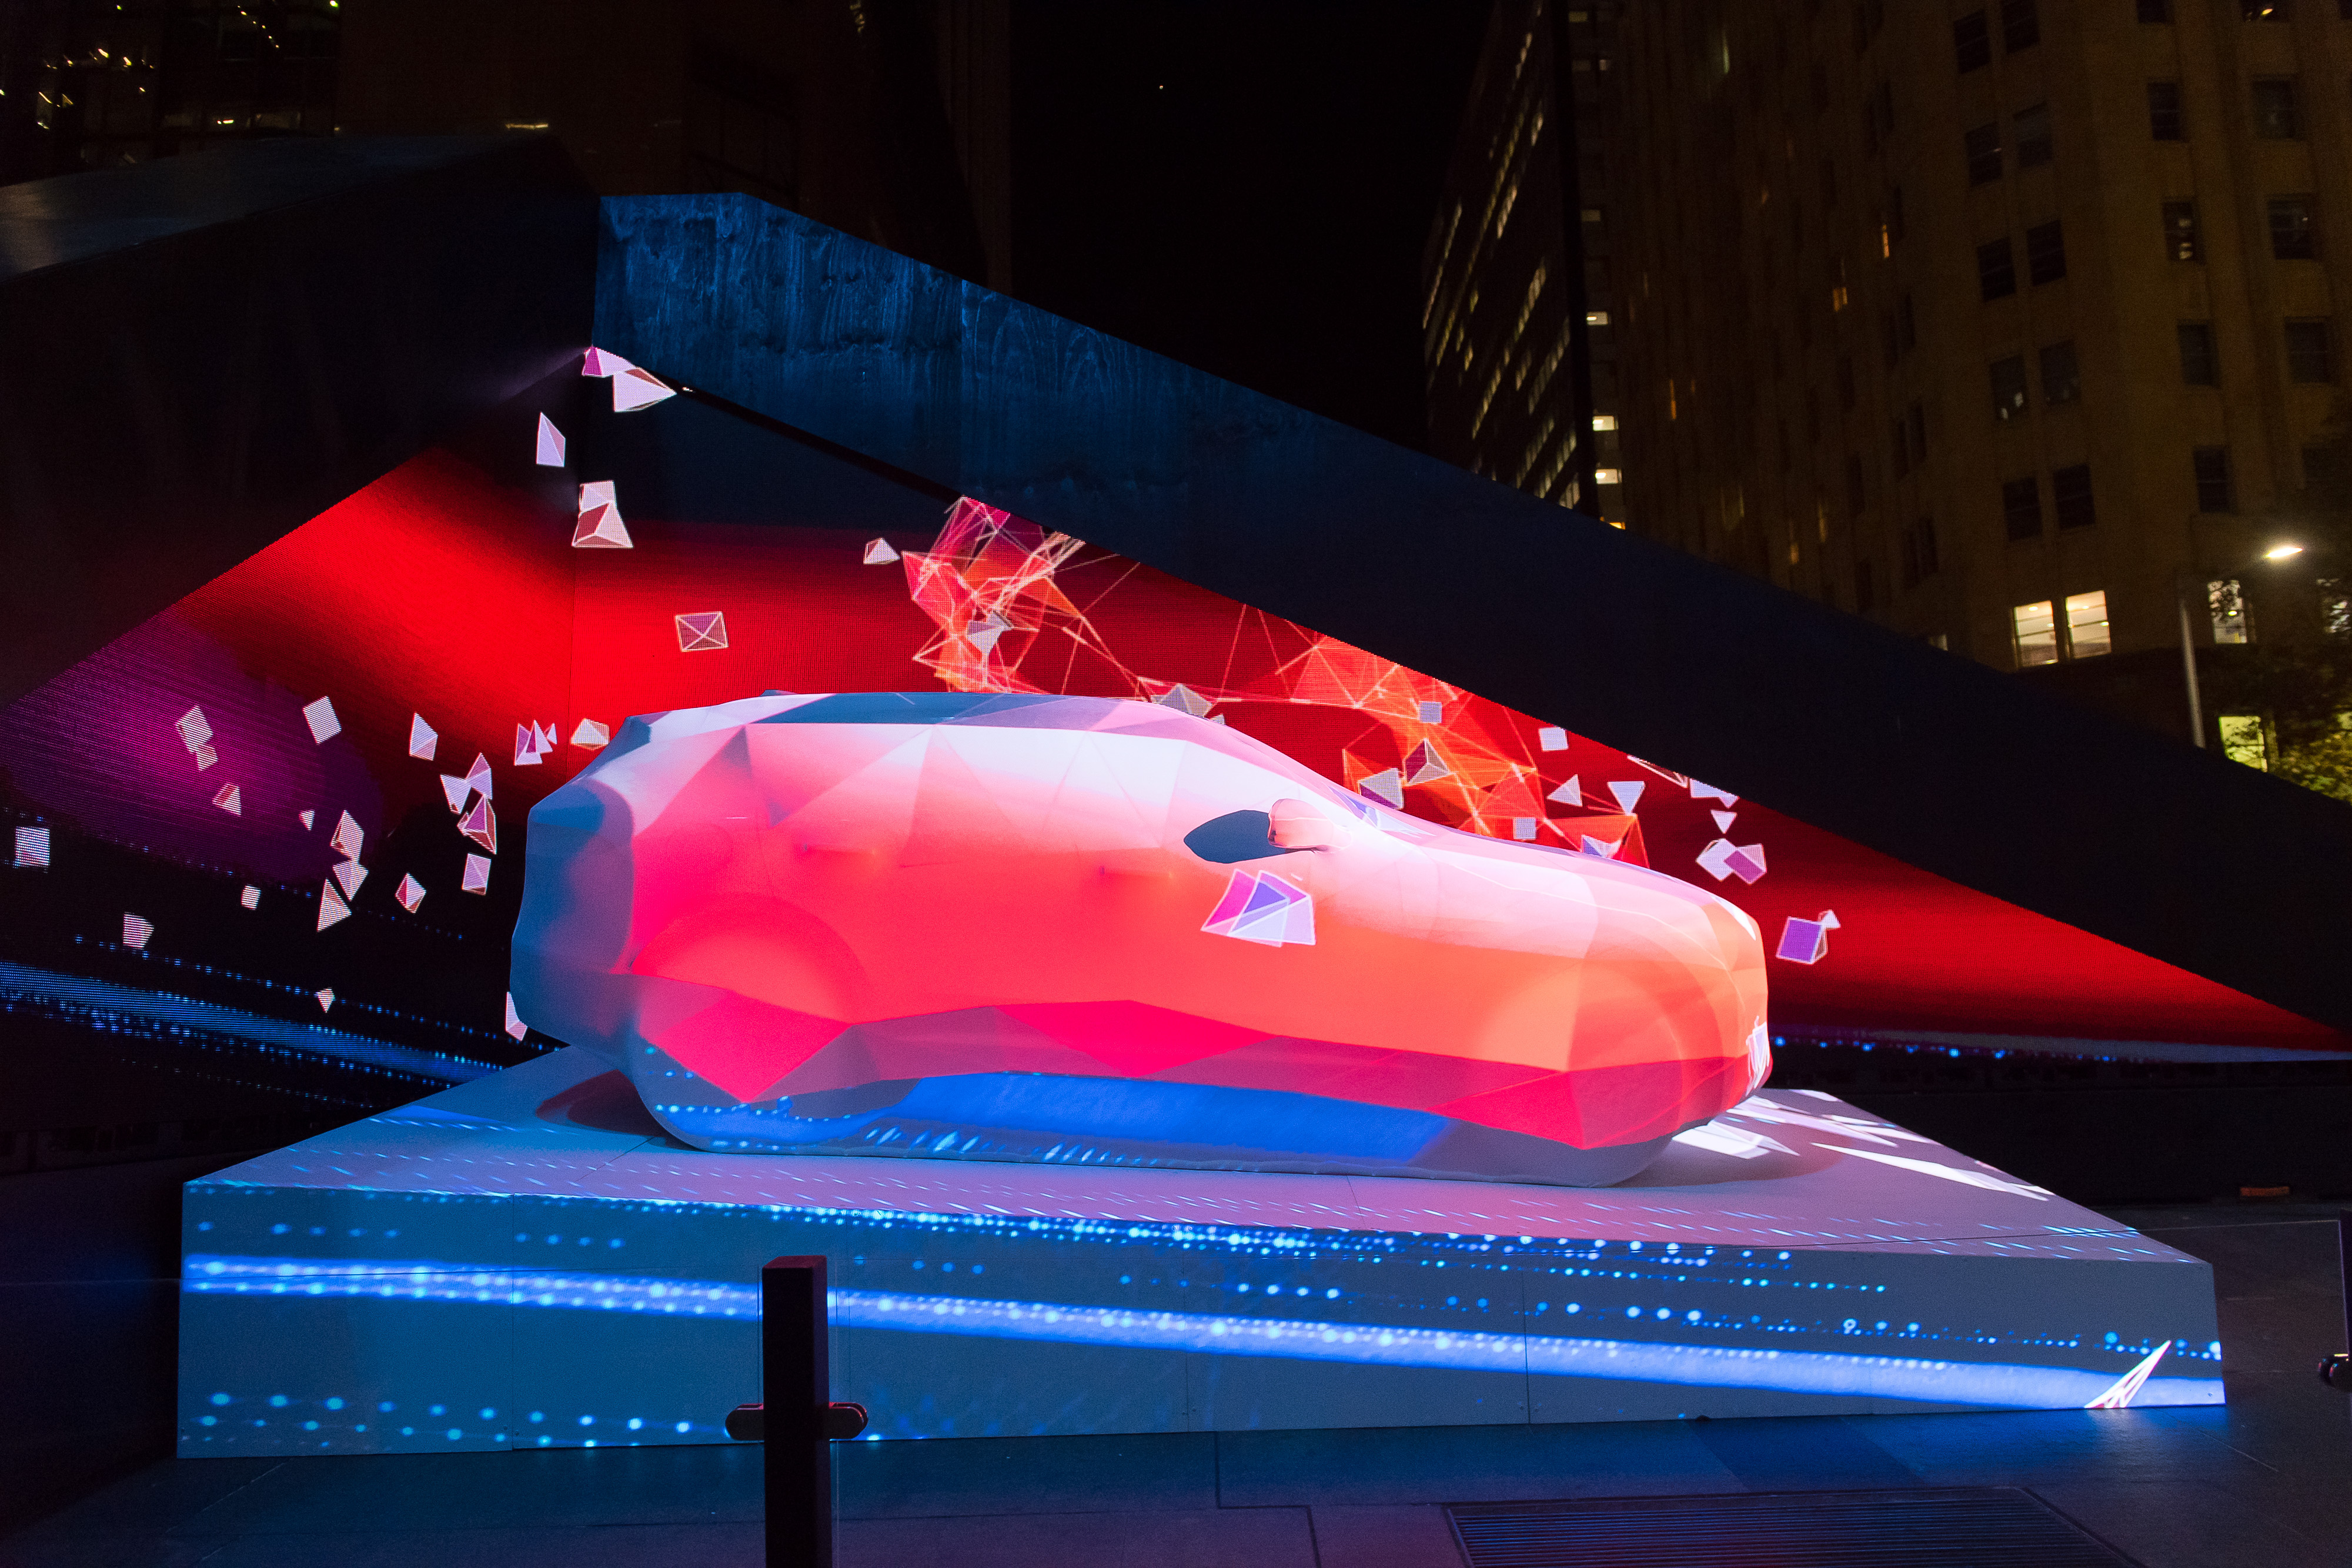 Jaguar's Captivating Performance At Vivid Sydney 2016 Jaguar Lights Up The All-New Jaguar F-Pace In Martin Place With 'The Art Of Performance'